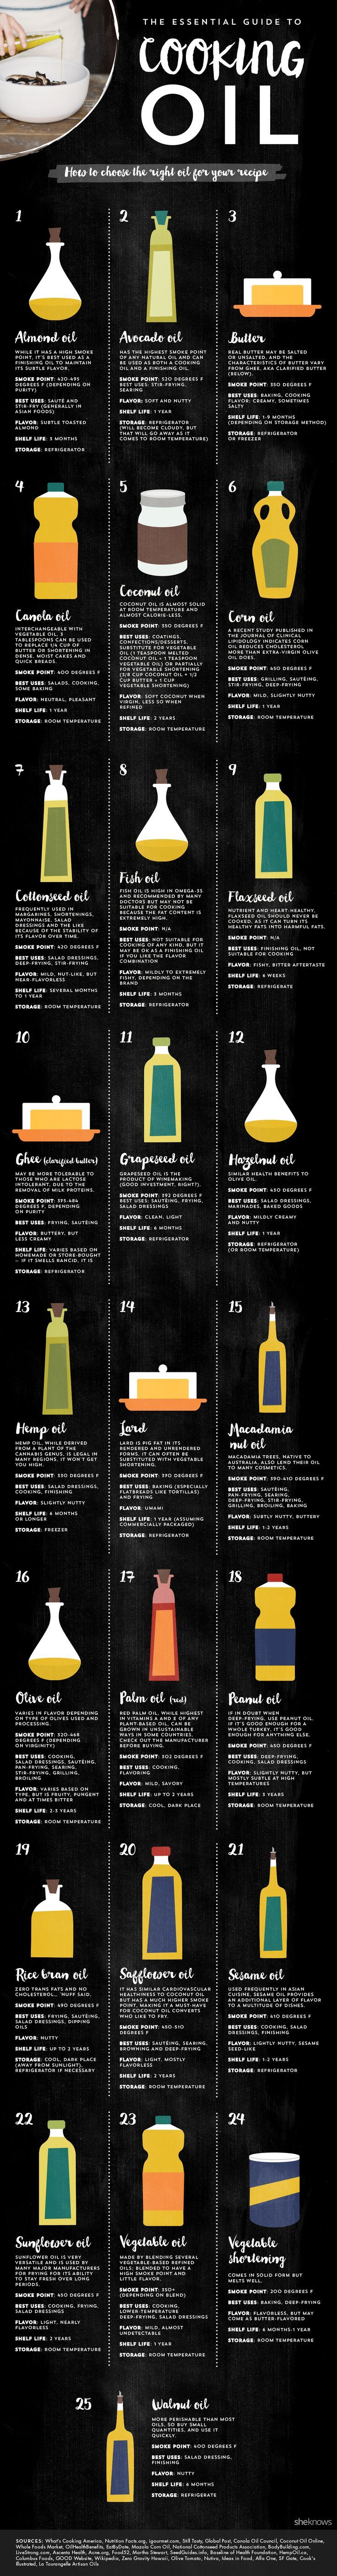 The essential guide to cooking oil infographic. Tips on how to choose the right cooking oil for your recipe!